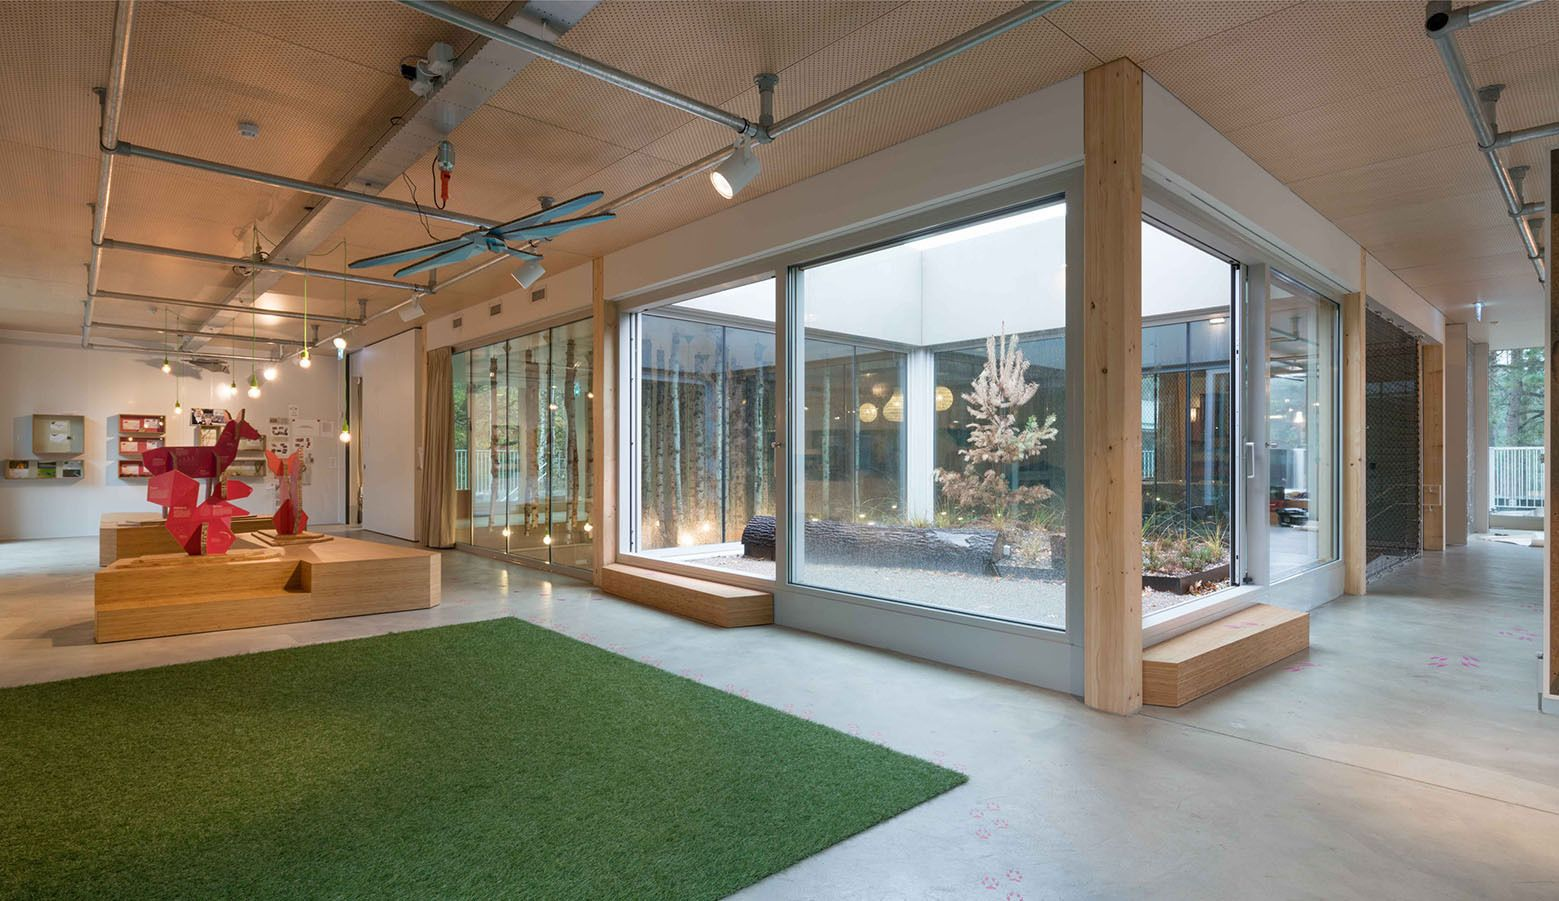 Gallery - Recreation and Education in Nature / Personal Architecture - 3